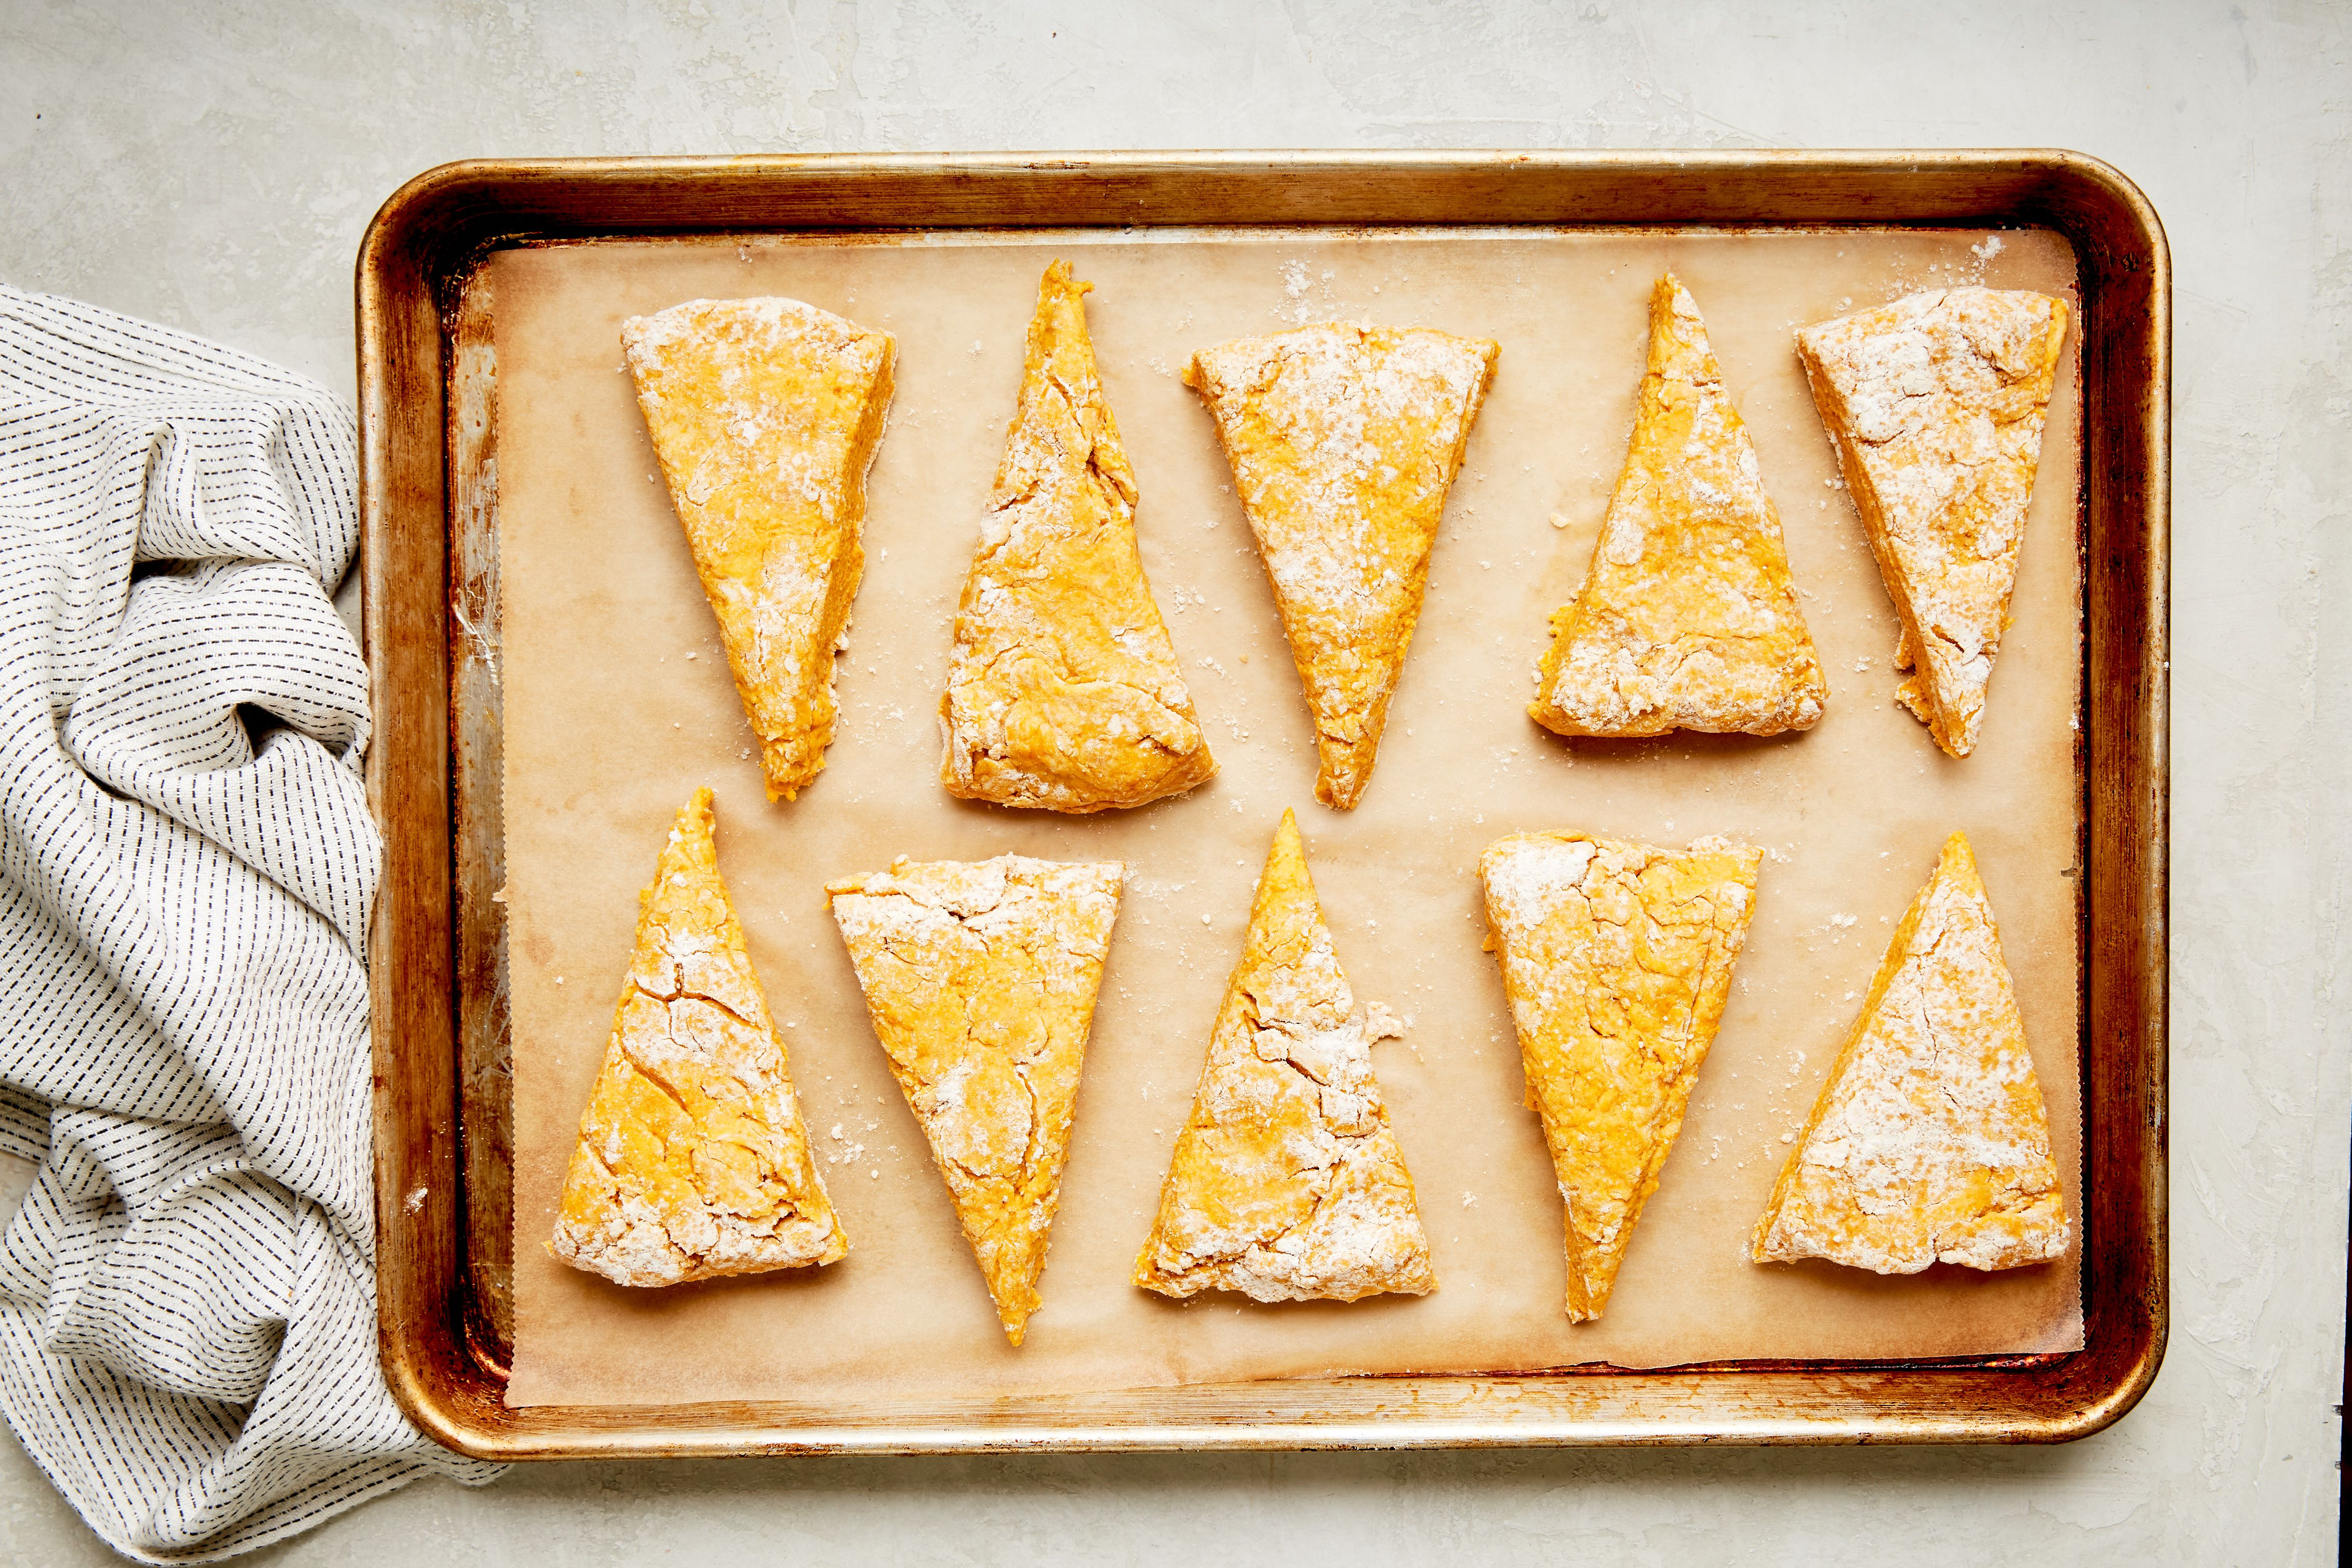 Transfer slices to a baking sheet